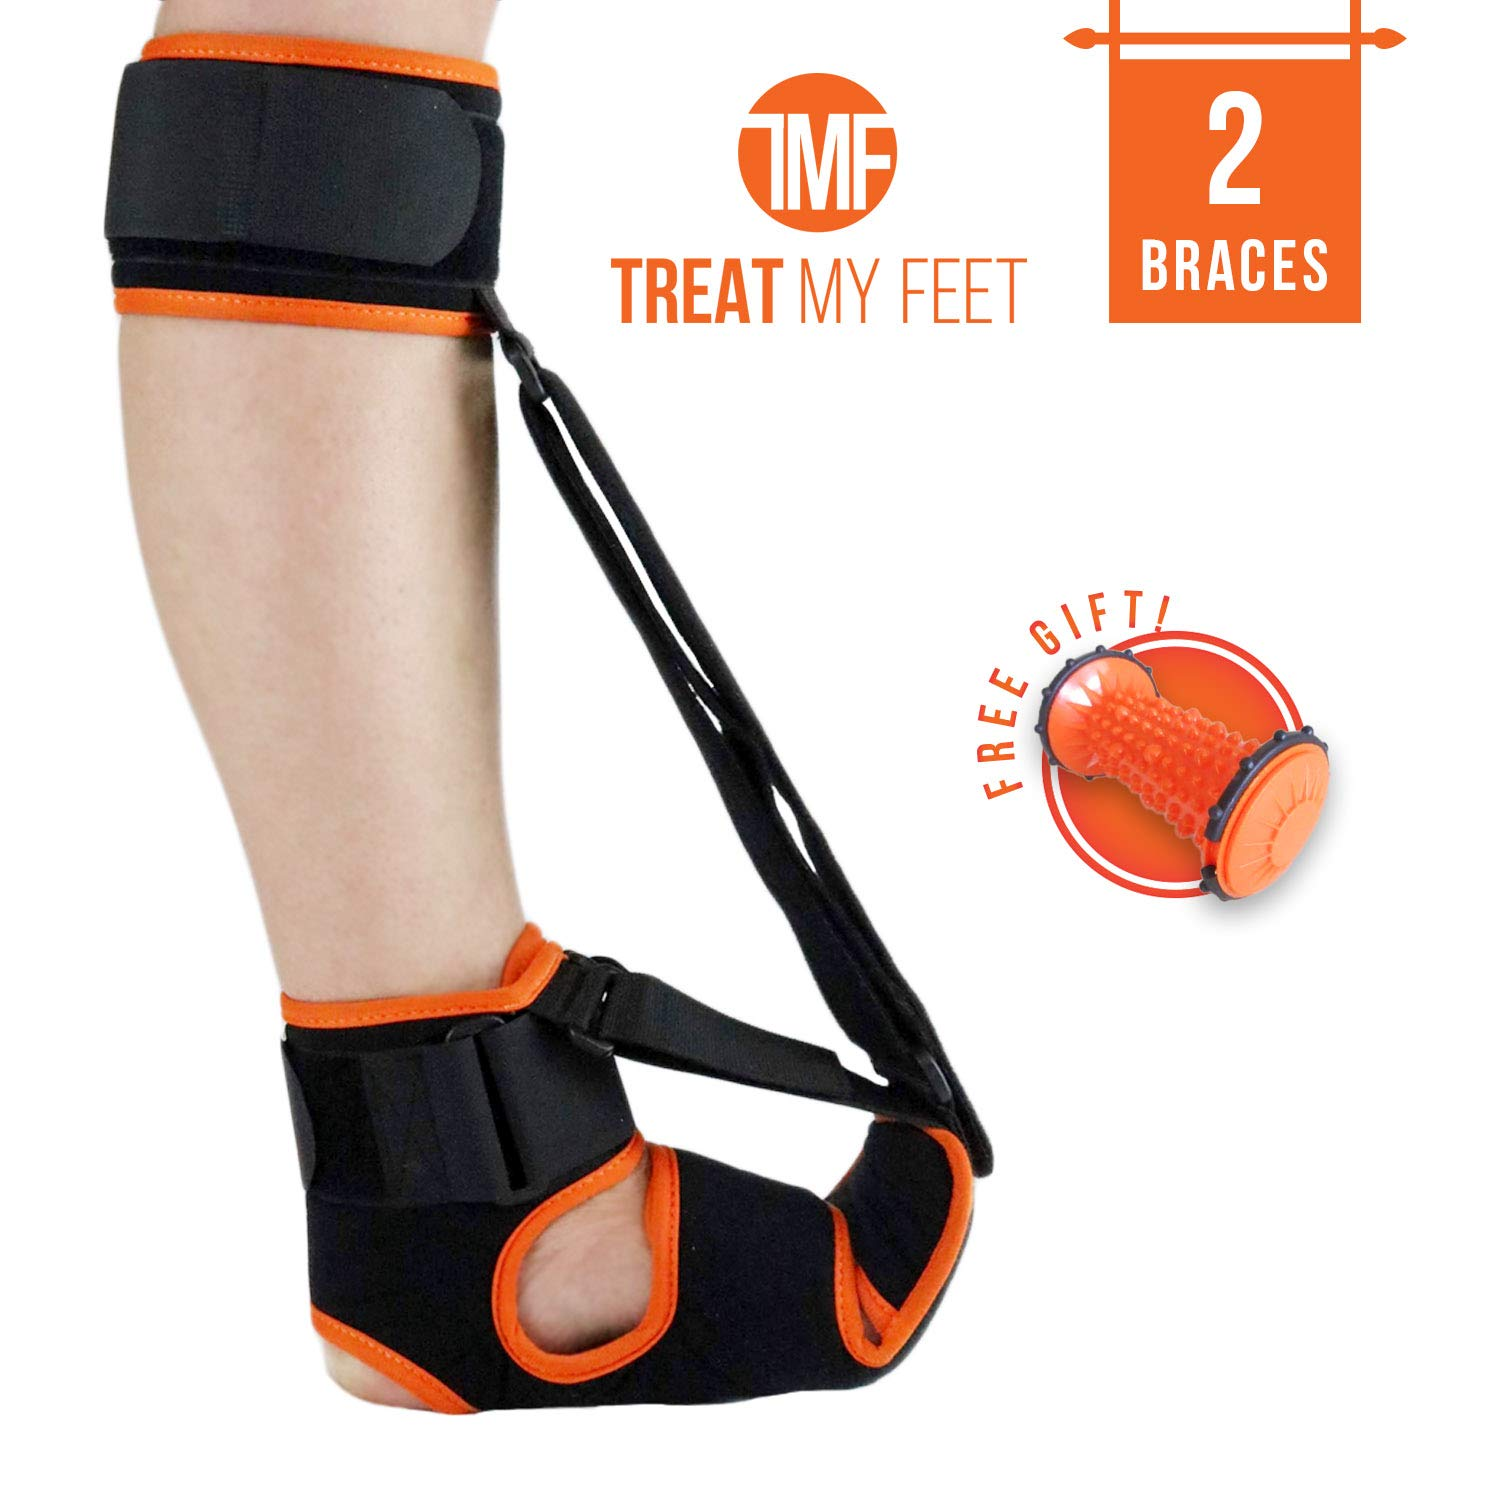 2 Pack Plantar Fasciitis Night Splint - Premium, Breathable, Comfy Plantar Fasciitis Support with Advanced Stretching Mechanism - Great Feet Orthotics Support for Achilles Tendonitis, Drop Foot & Pain by Treat My Feet